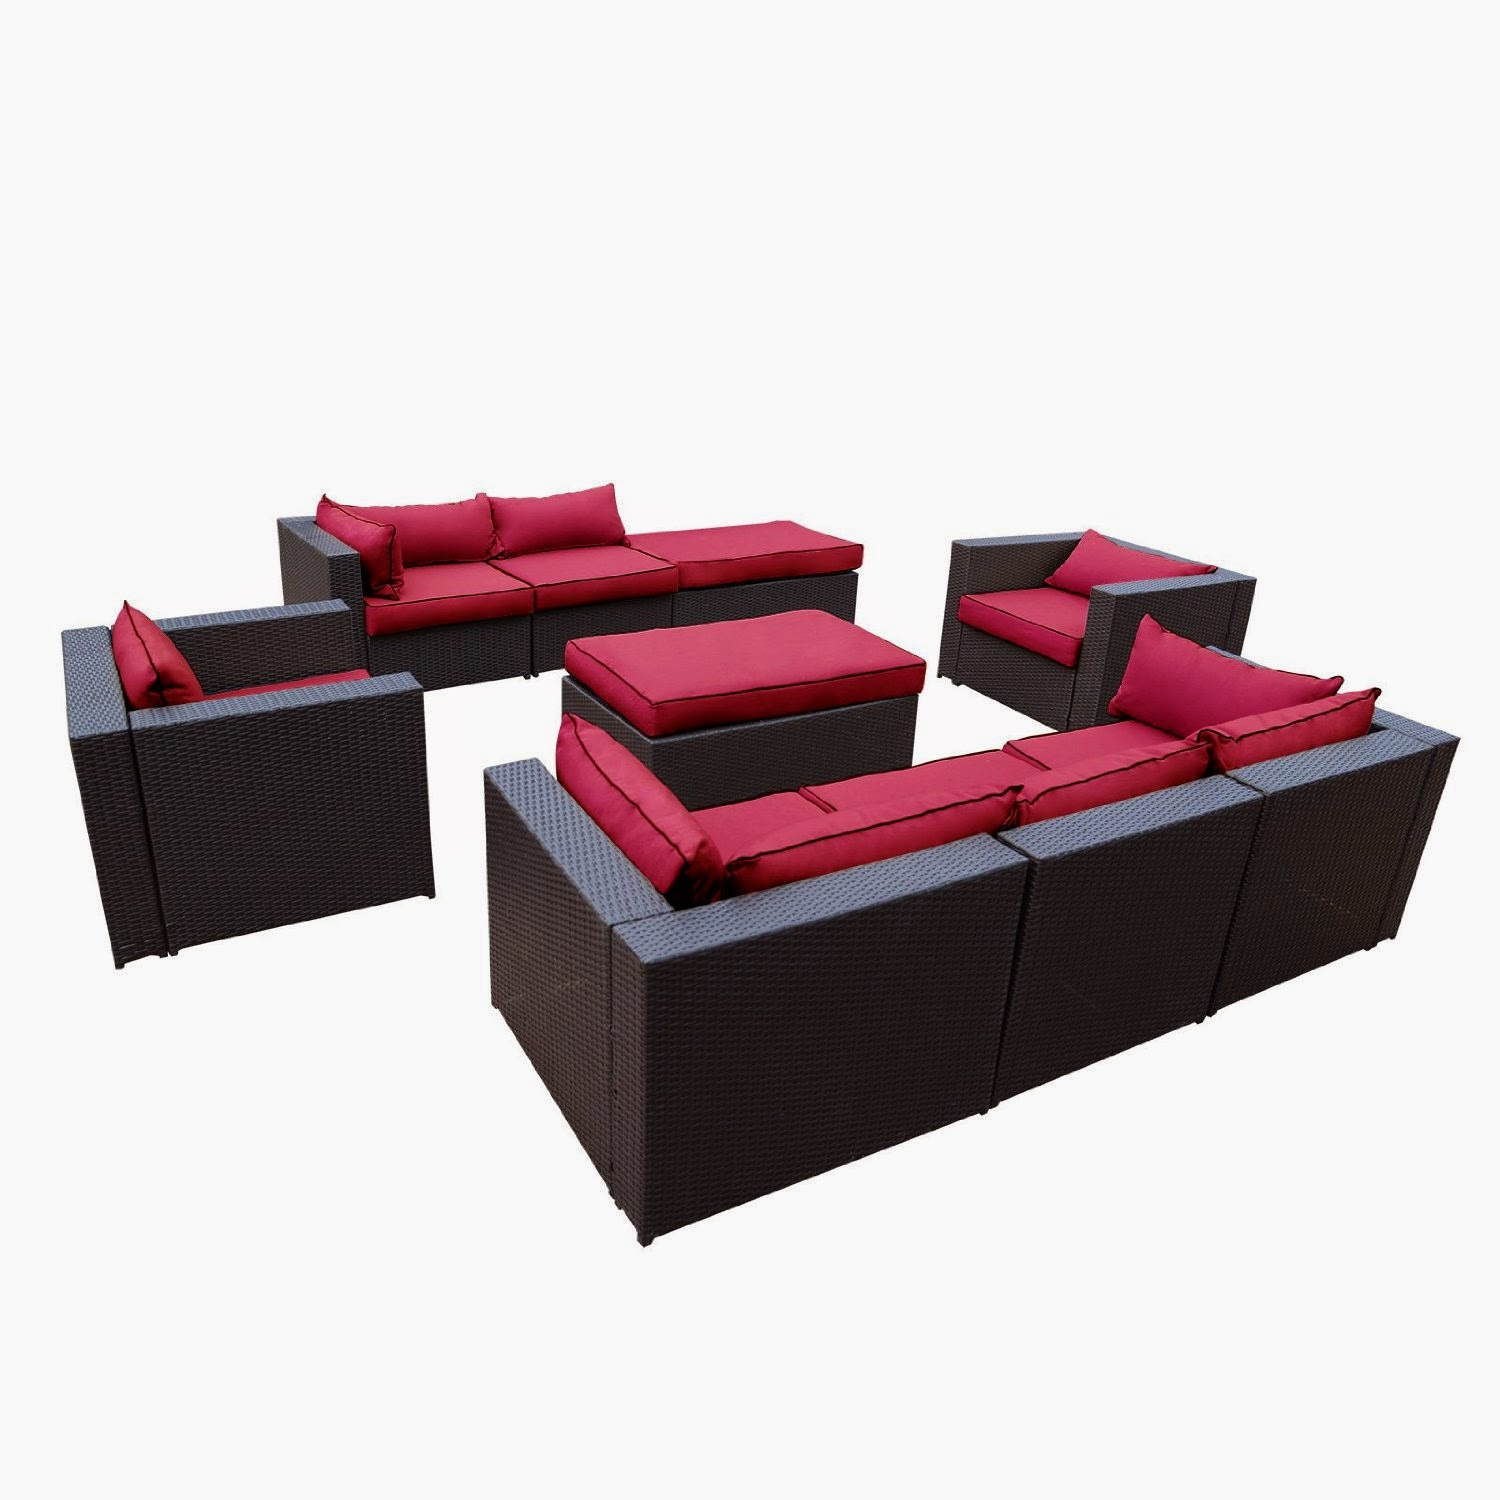 Outdoor Patio Rattan Wicker Furniture Sectional Sofa